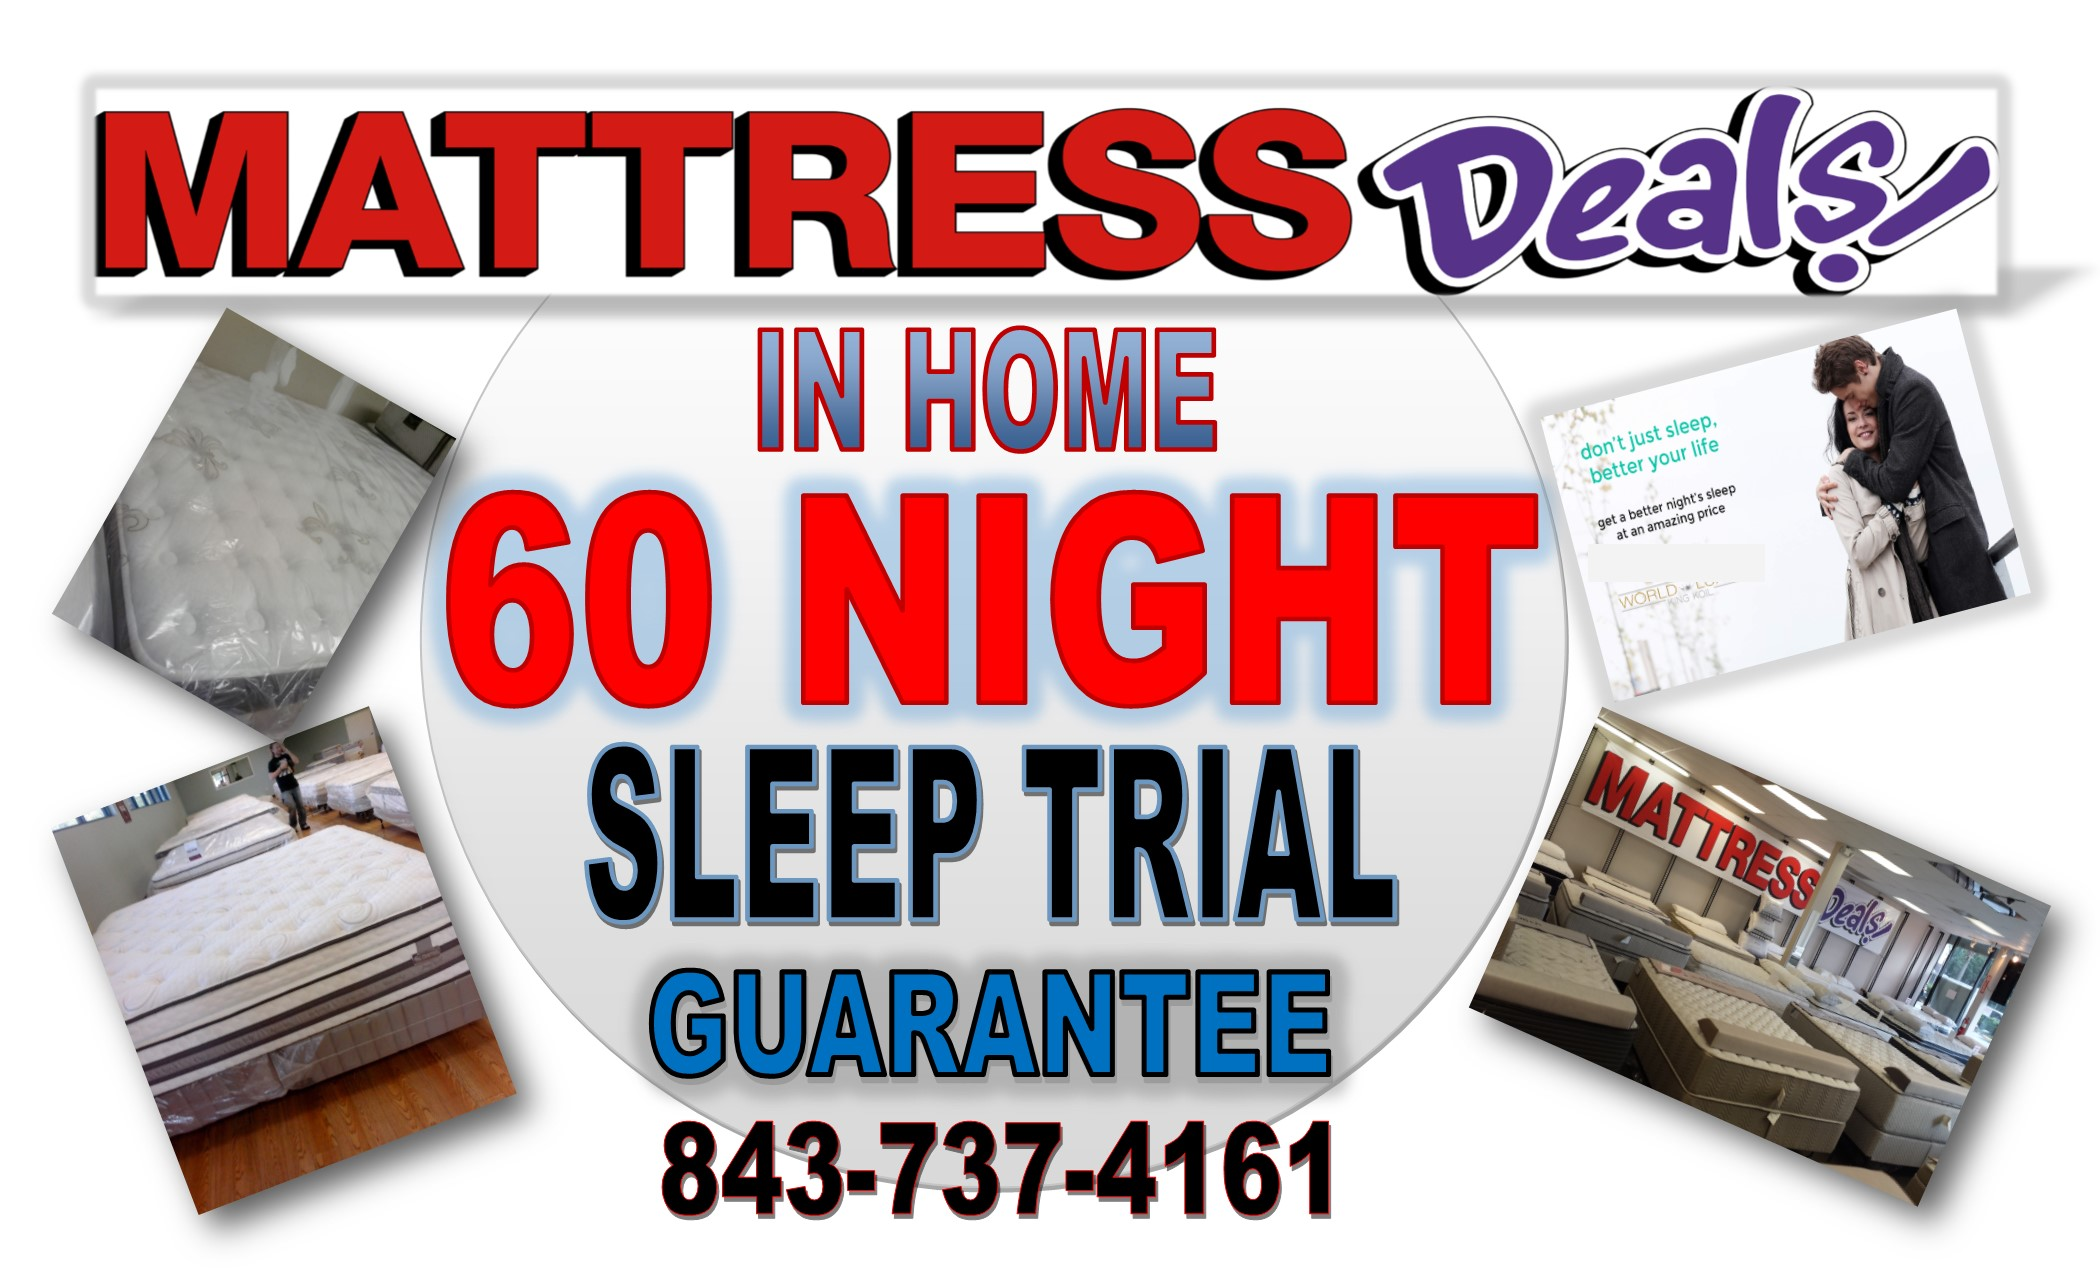 Mattress Deals image 9